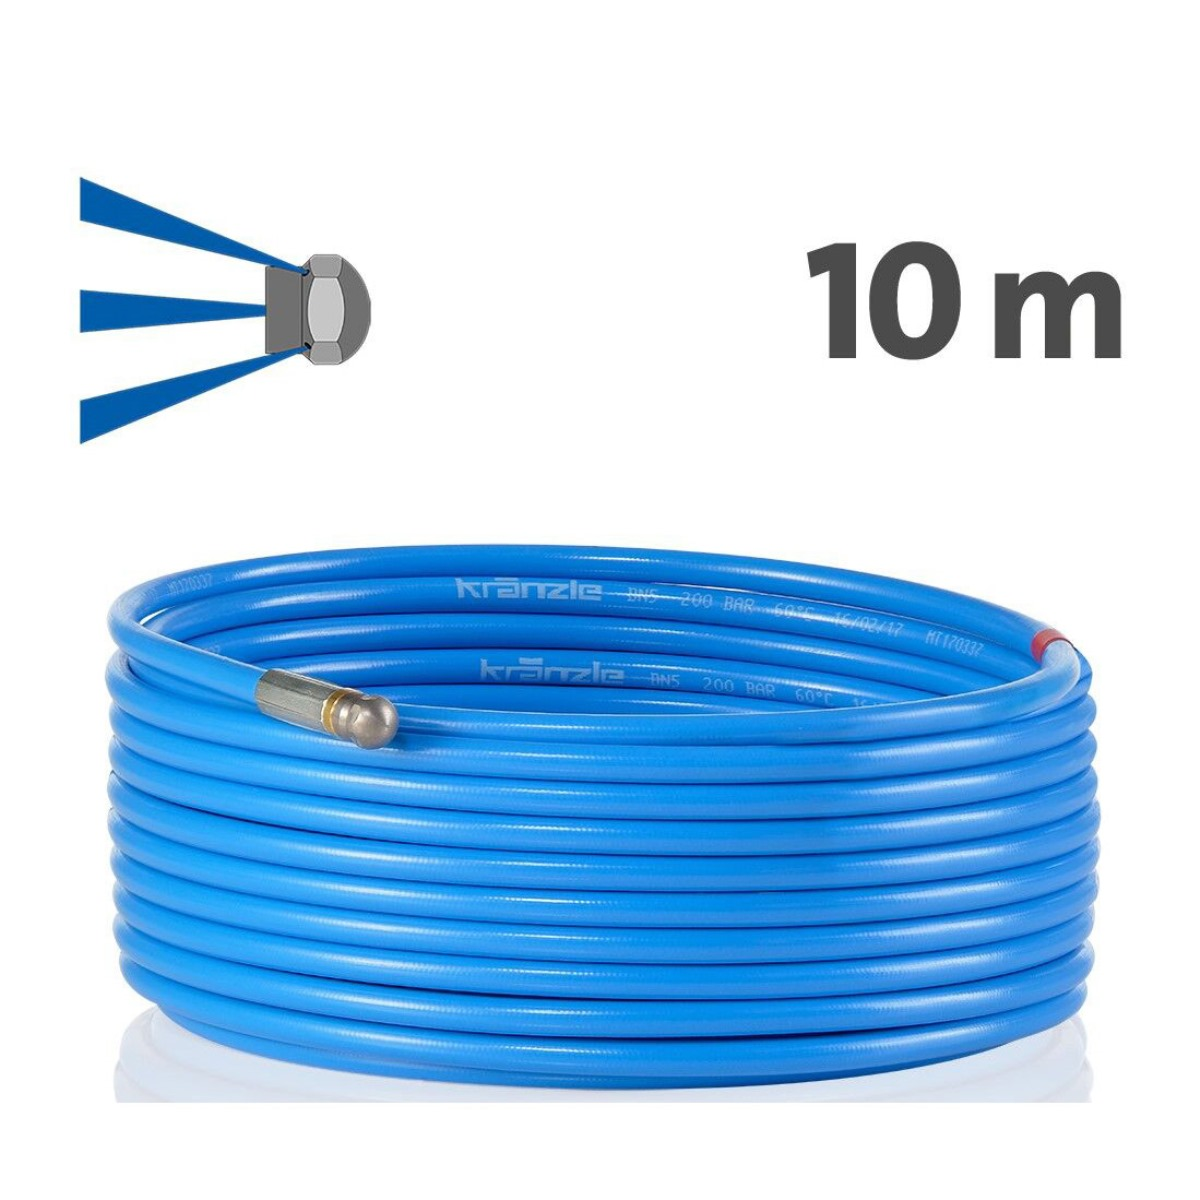 410581 - Drain Cleaning Hose 10m